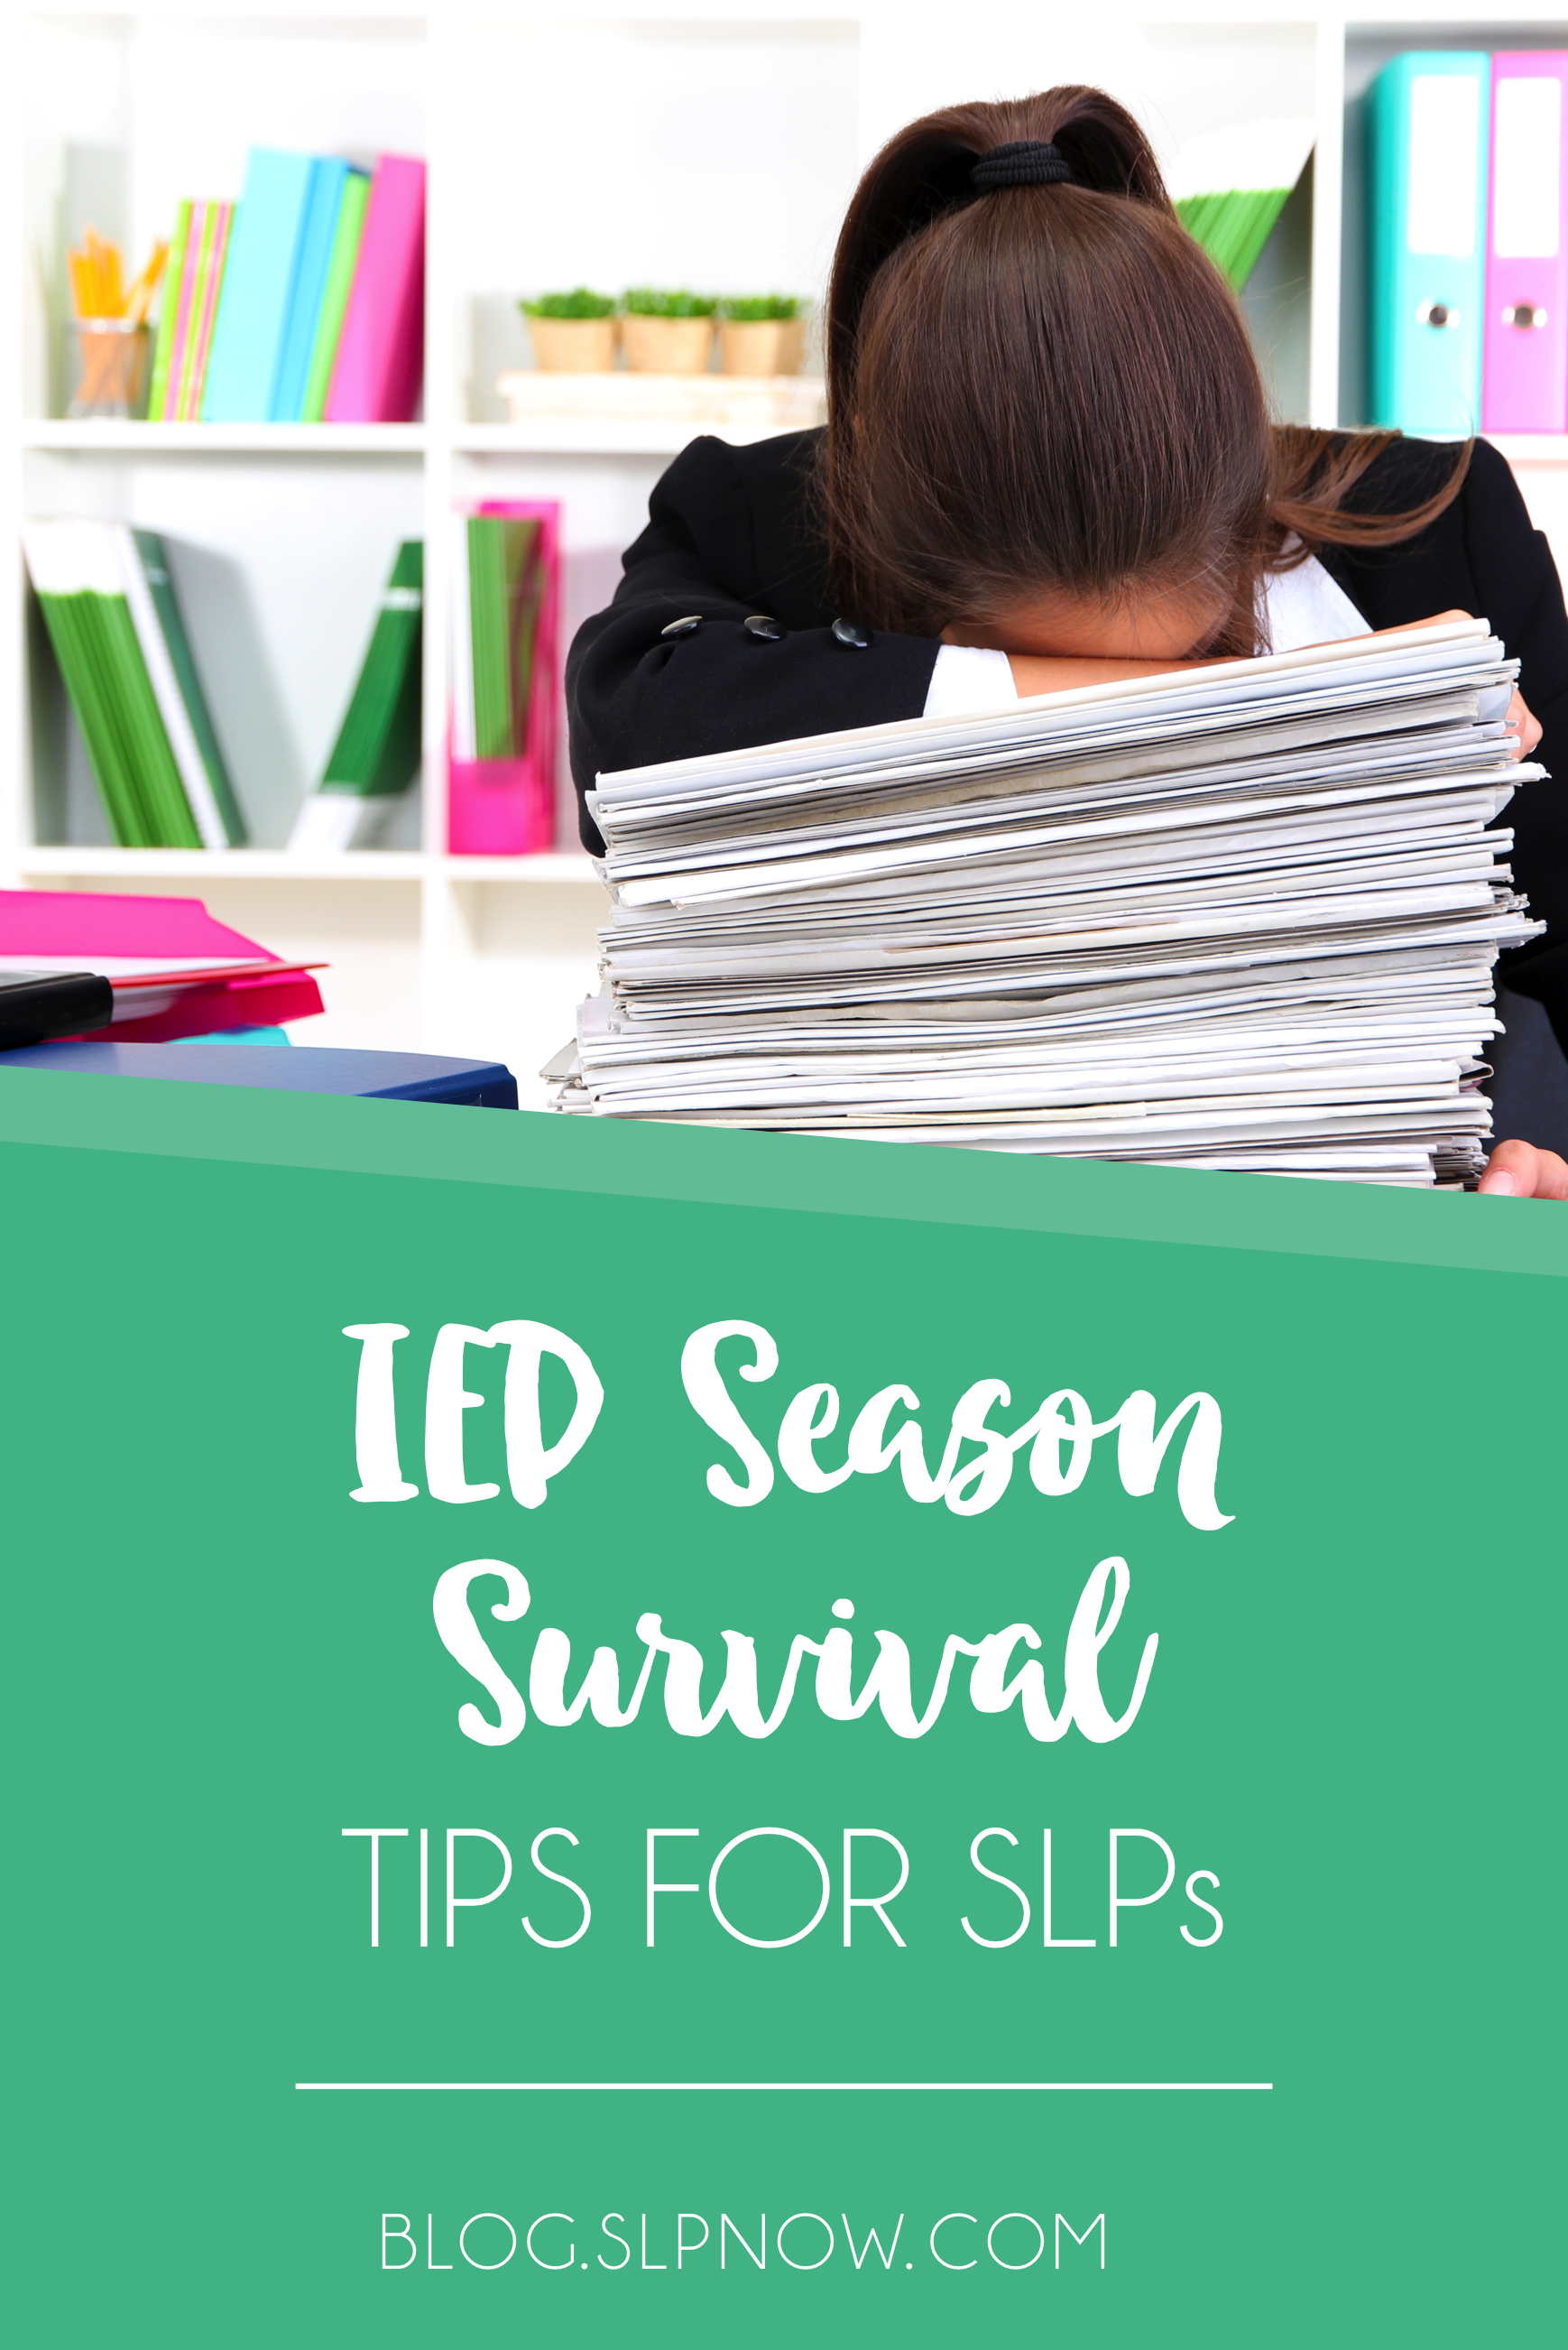 As far as an SLP's job goes, there's not much that's more trying than IEP season. I'm sharing my top five tips for helping you survive IEP season. Some of these tools you already have within yourself - you just need to implement them! Get the full list inside this blog post.